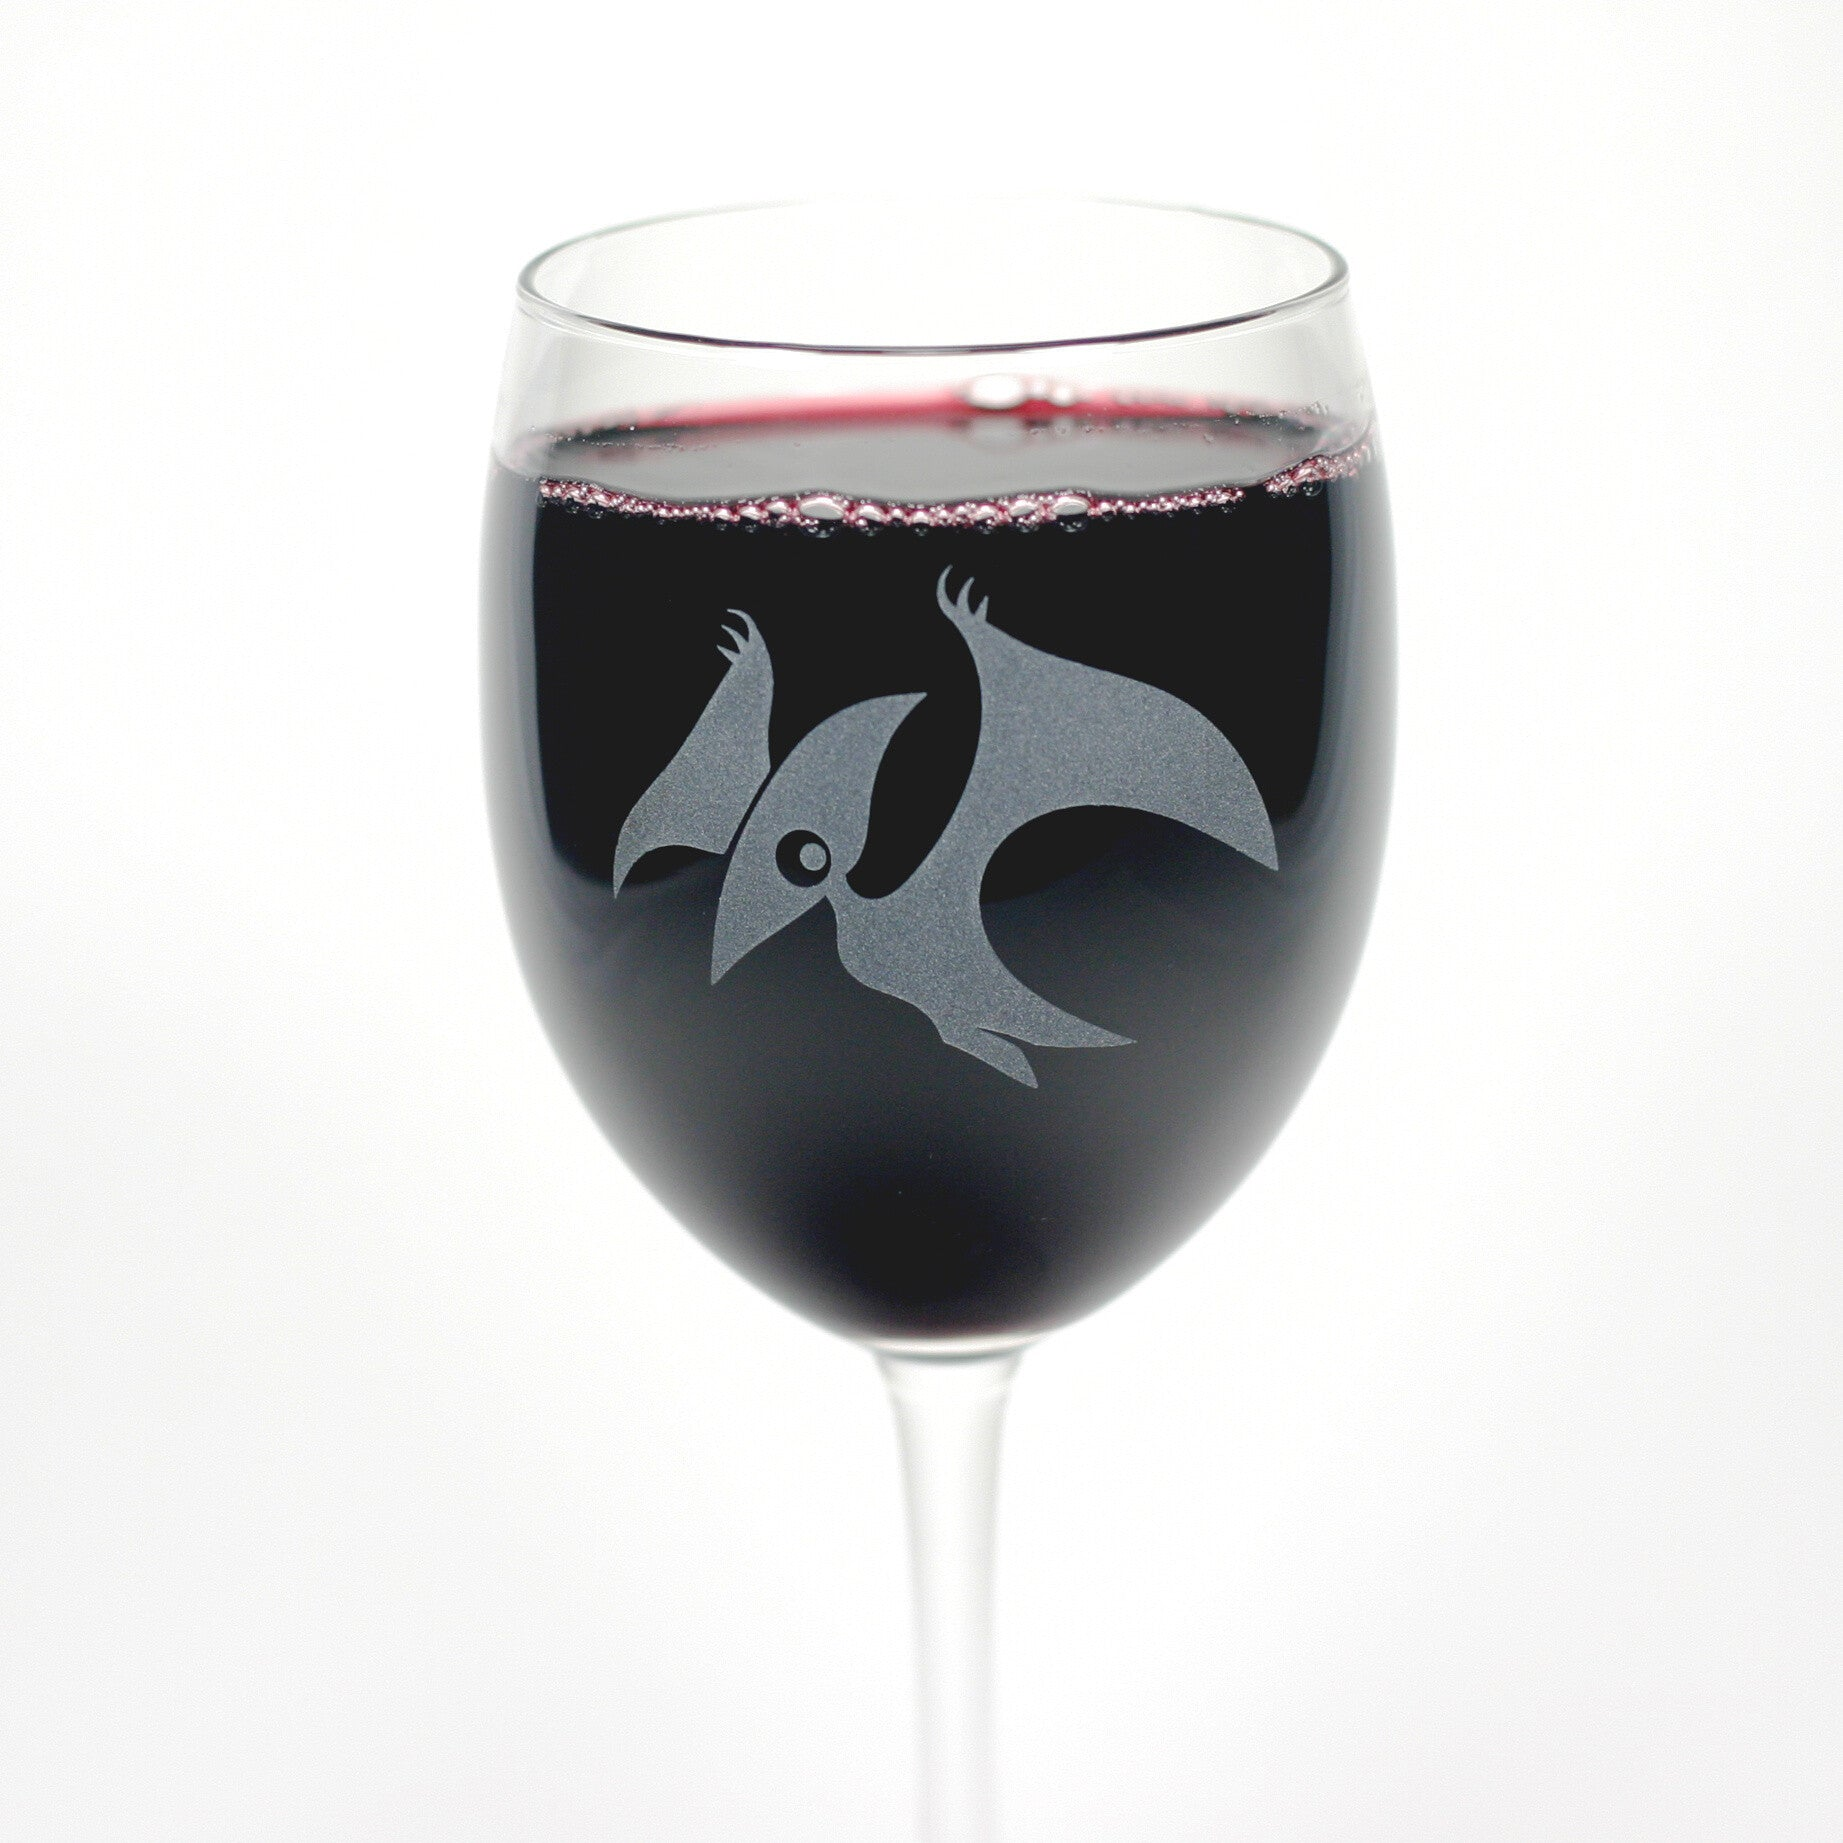 etched Pterodactyl wine glass